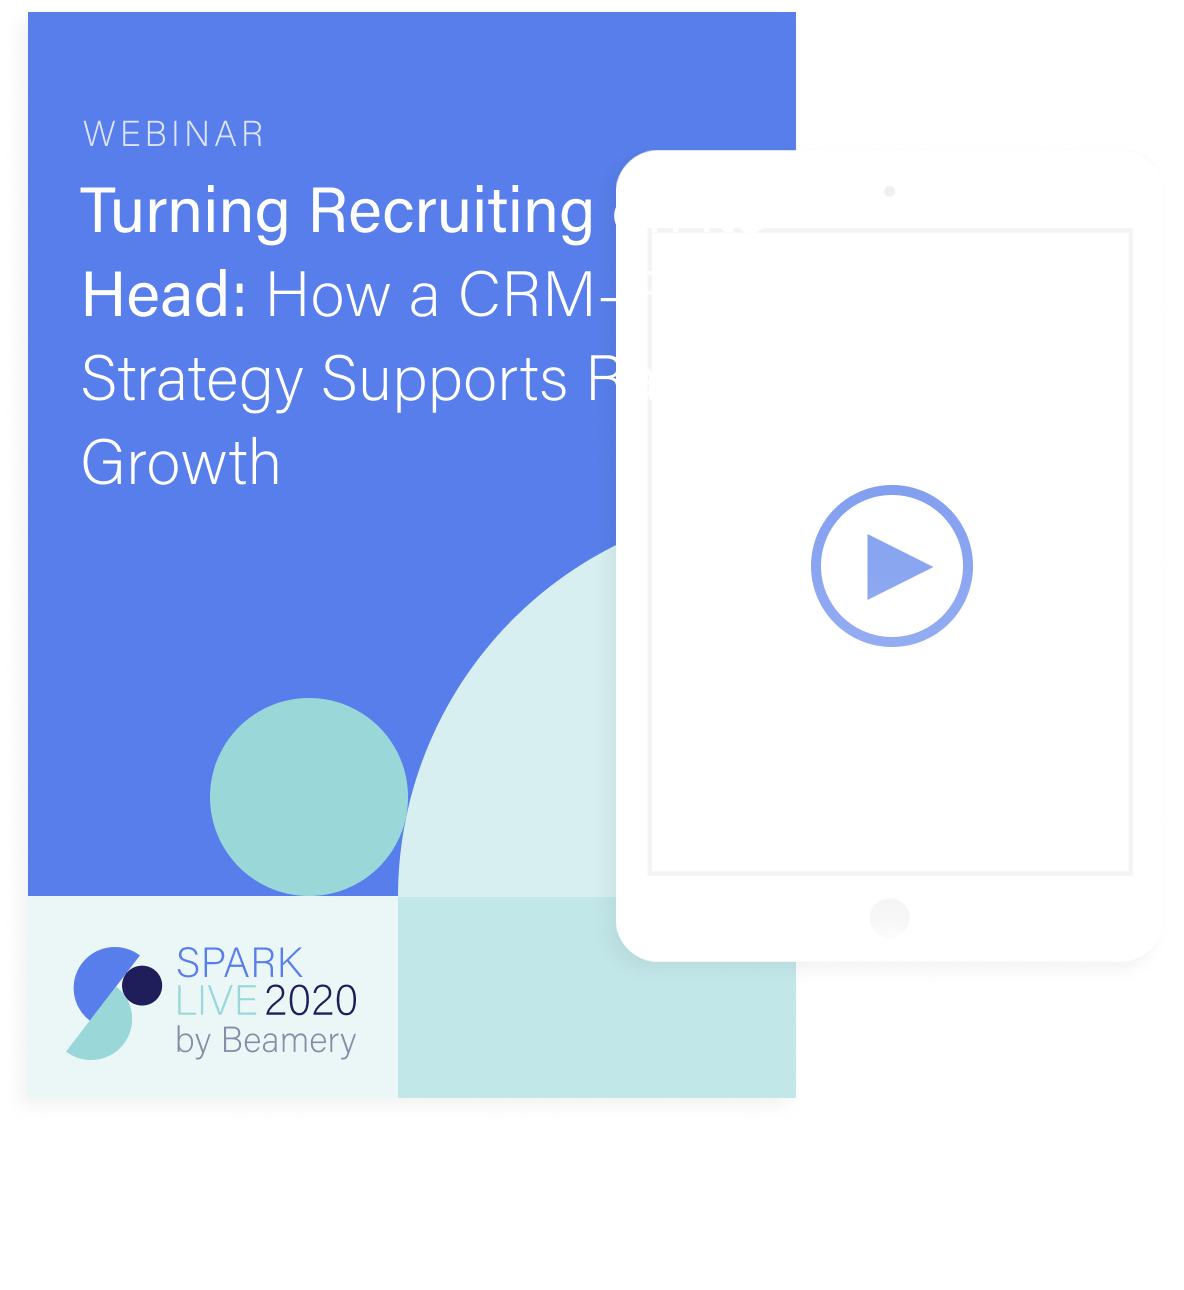 Turning Recruiting on its Head: How a CRM-First Strategy Supports Rapid Growth